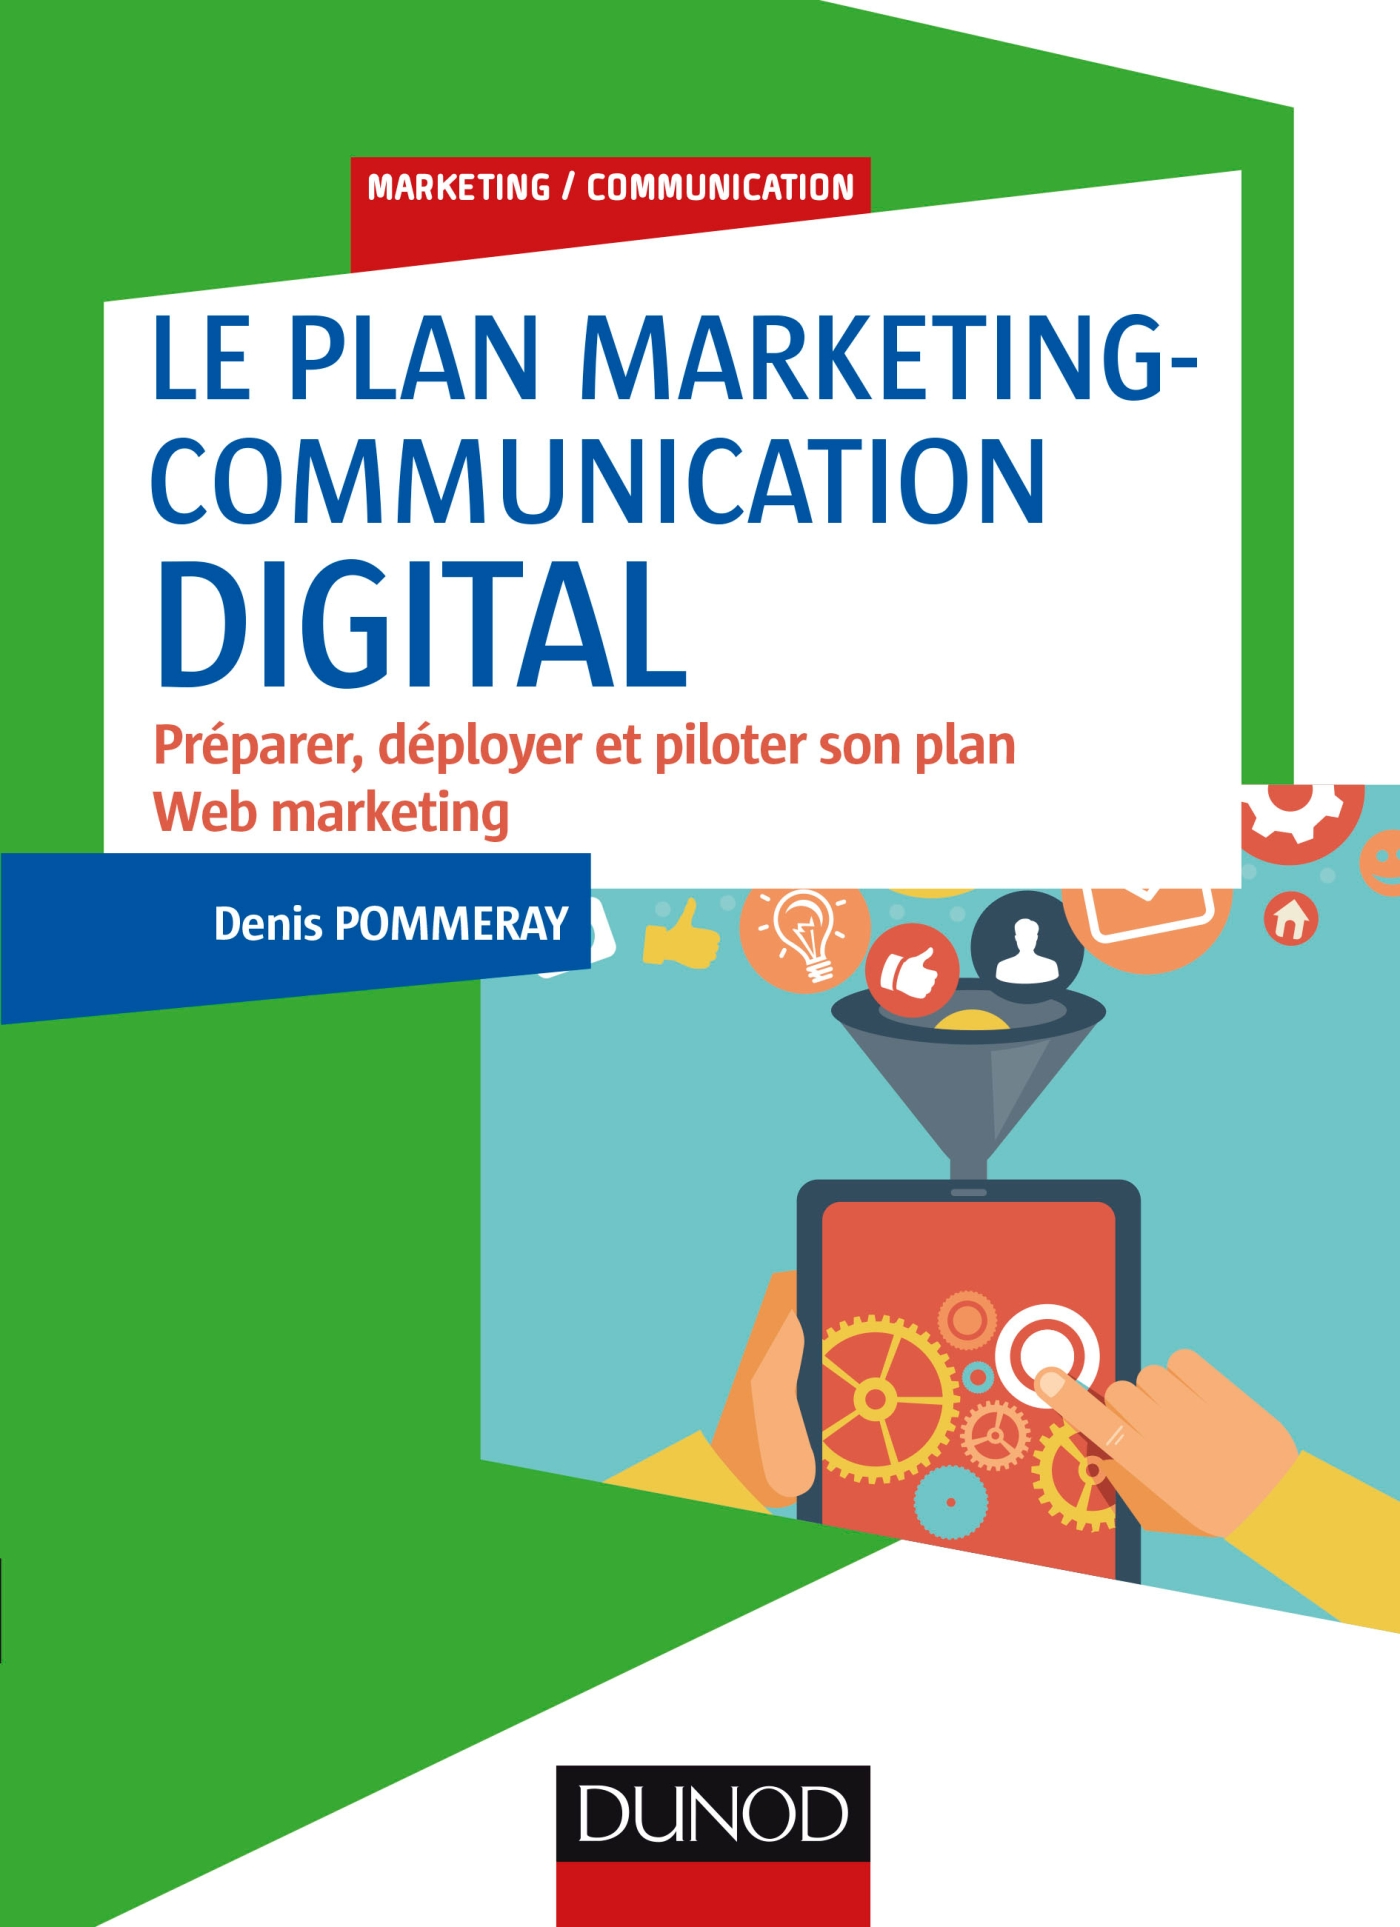 Le plan marketing-communication digital